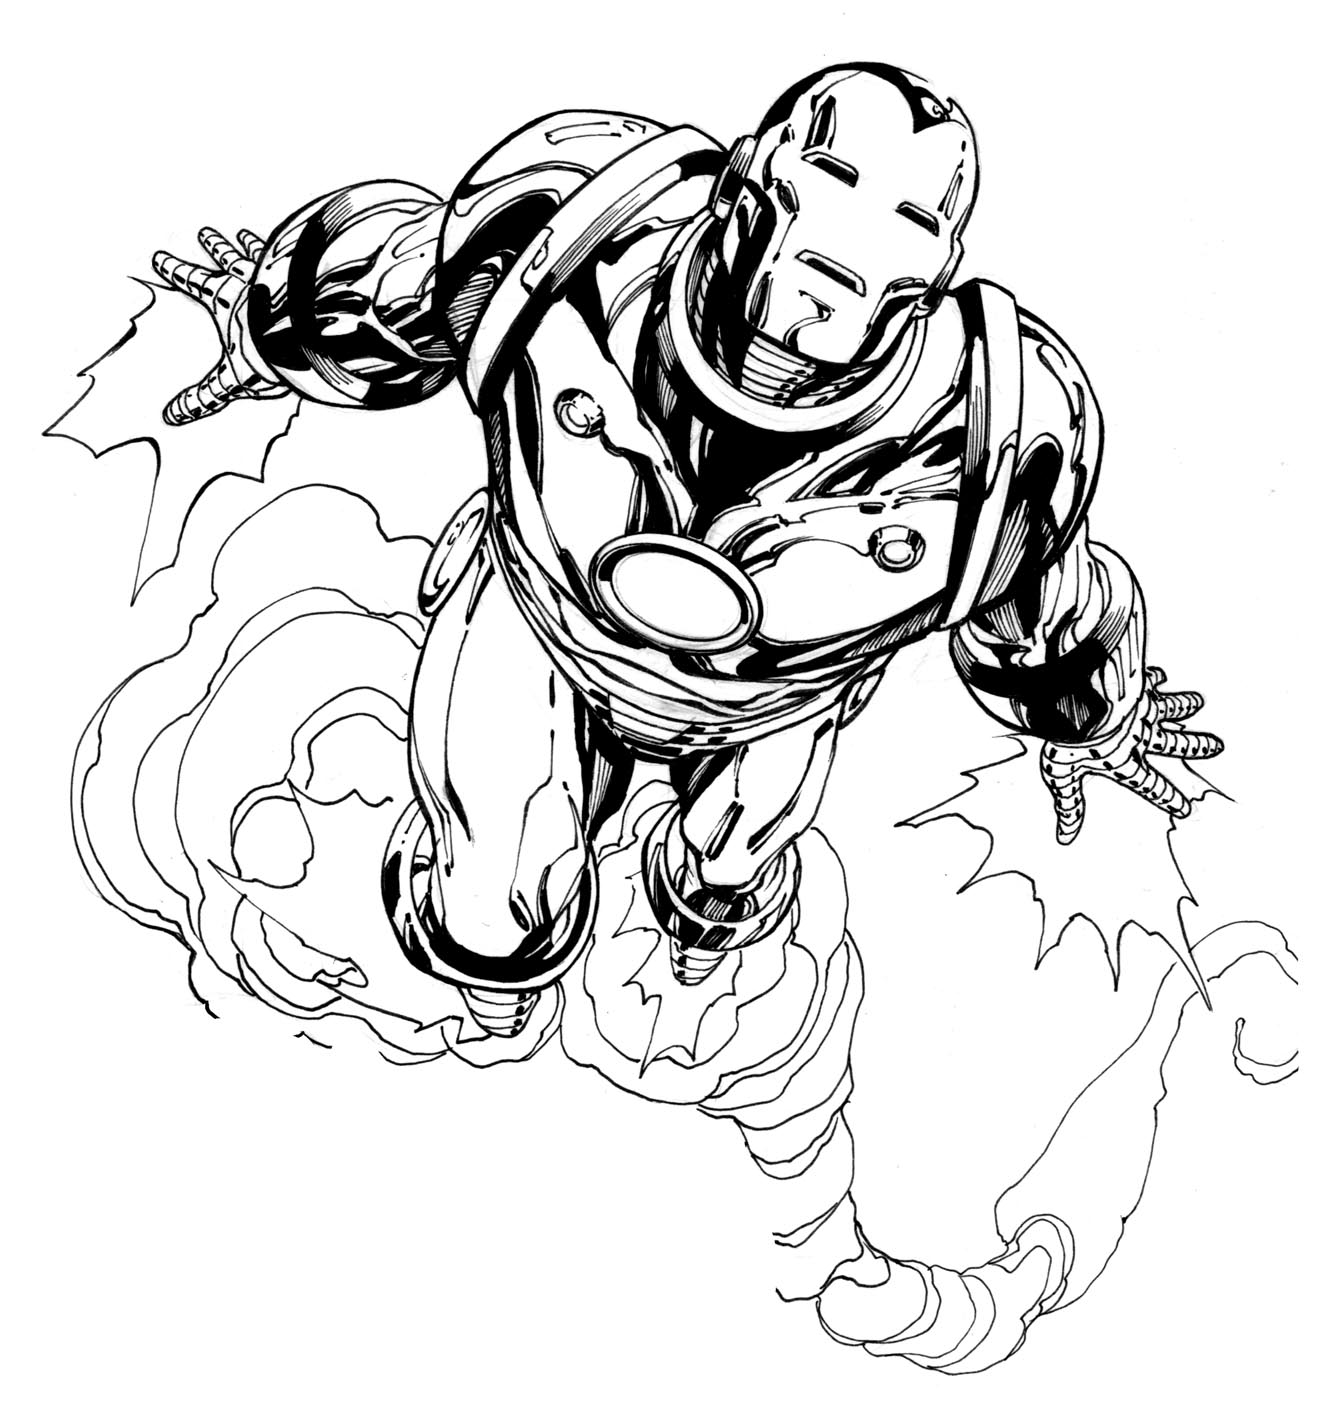 Simple Iron Man coloring page to download for free